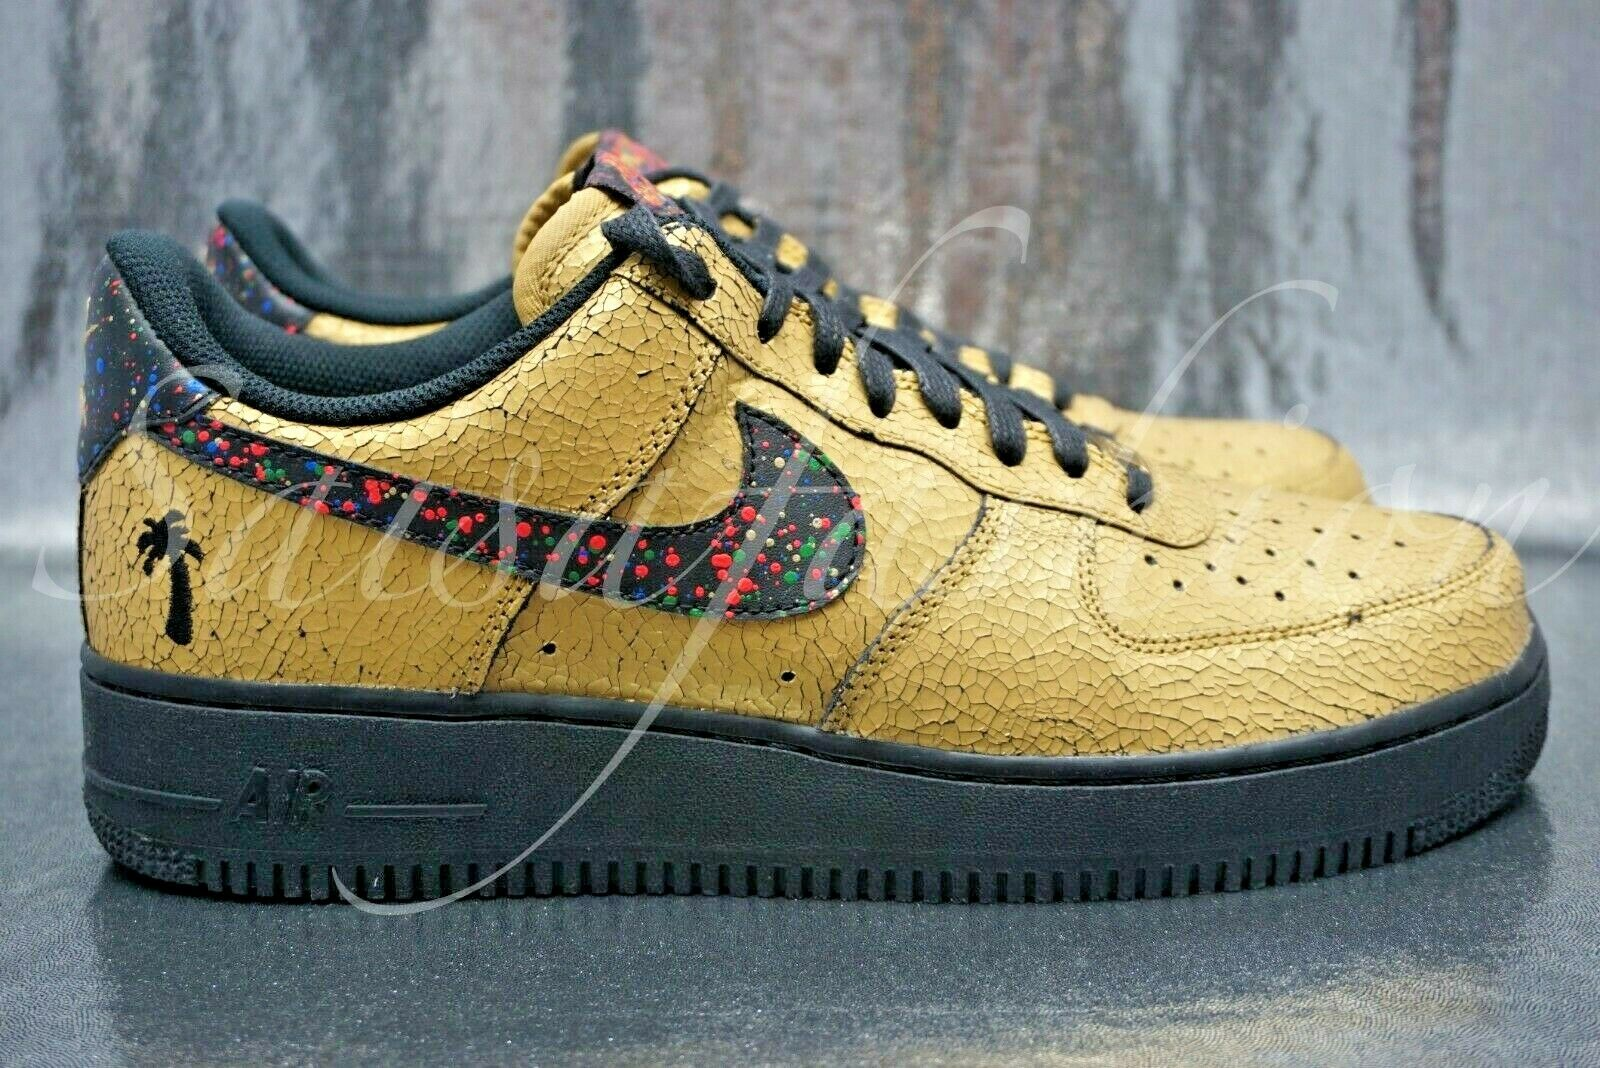 Nike Air Force 1 07 Caribana Festival Metallic gold Black Sneakers Men Size 10.5